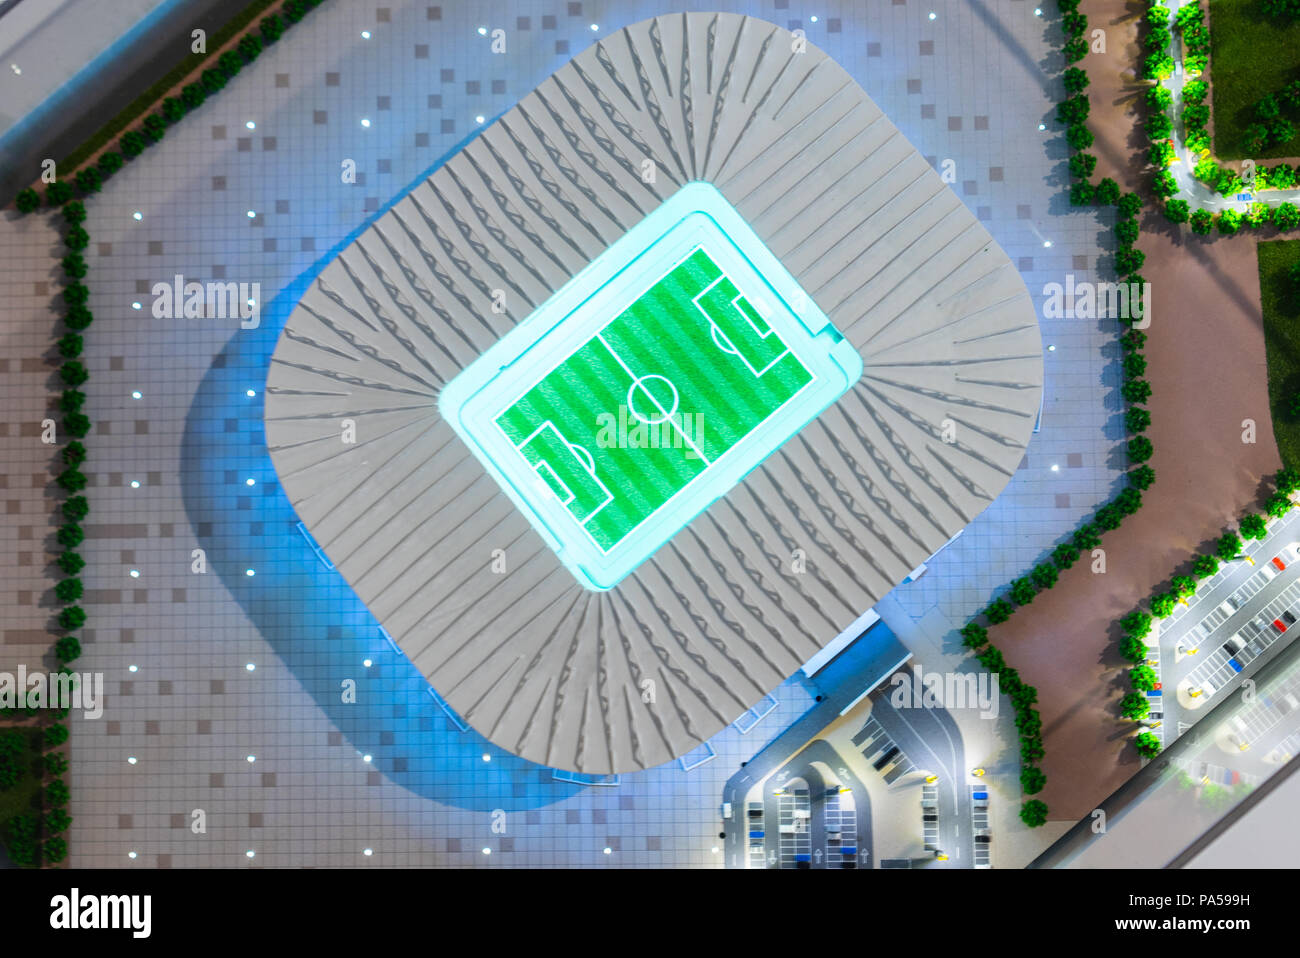 July 7, 2018, Moscow, Russia The mock-up of the Ras Abu Aboud Stadium at which the matches of the FIFA World Cup 2022 in Qatar will be held. Stock Photo